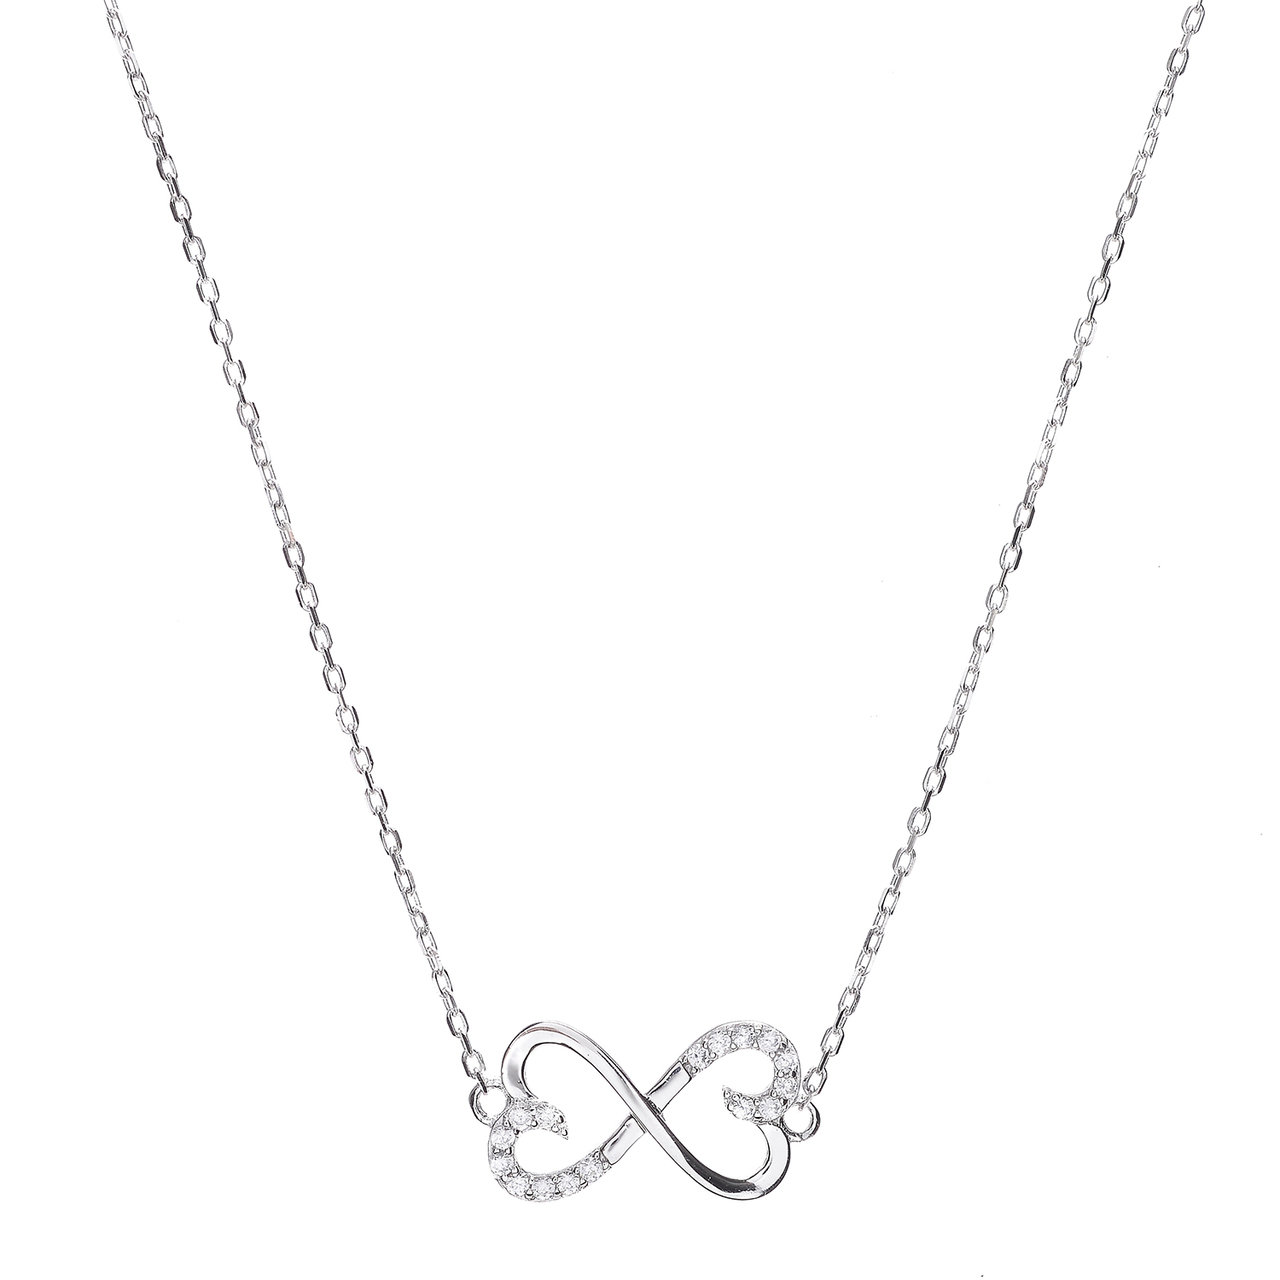 1280x1280 Sterling Silver Cz Infinity Heart Necklaces